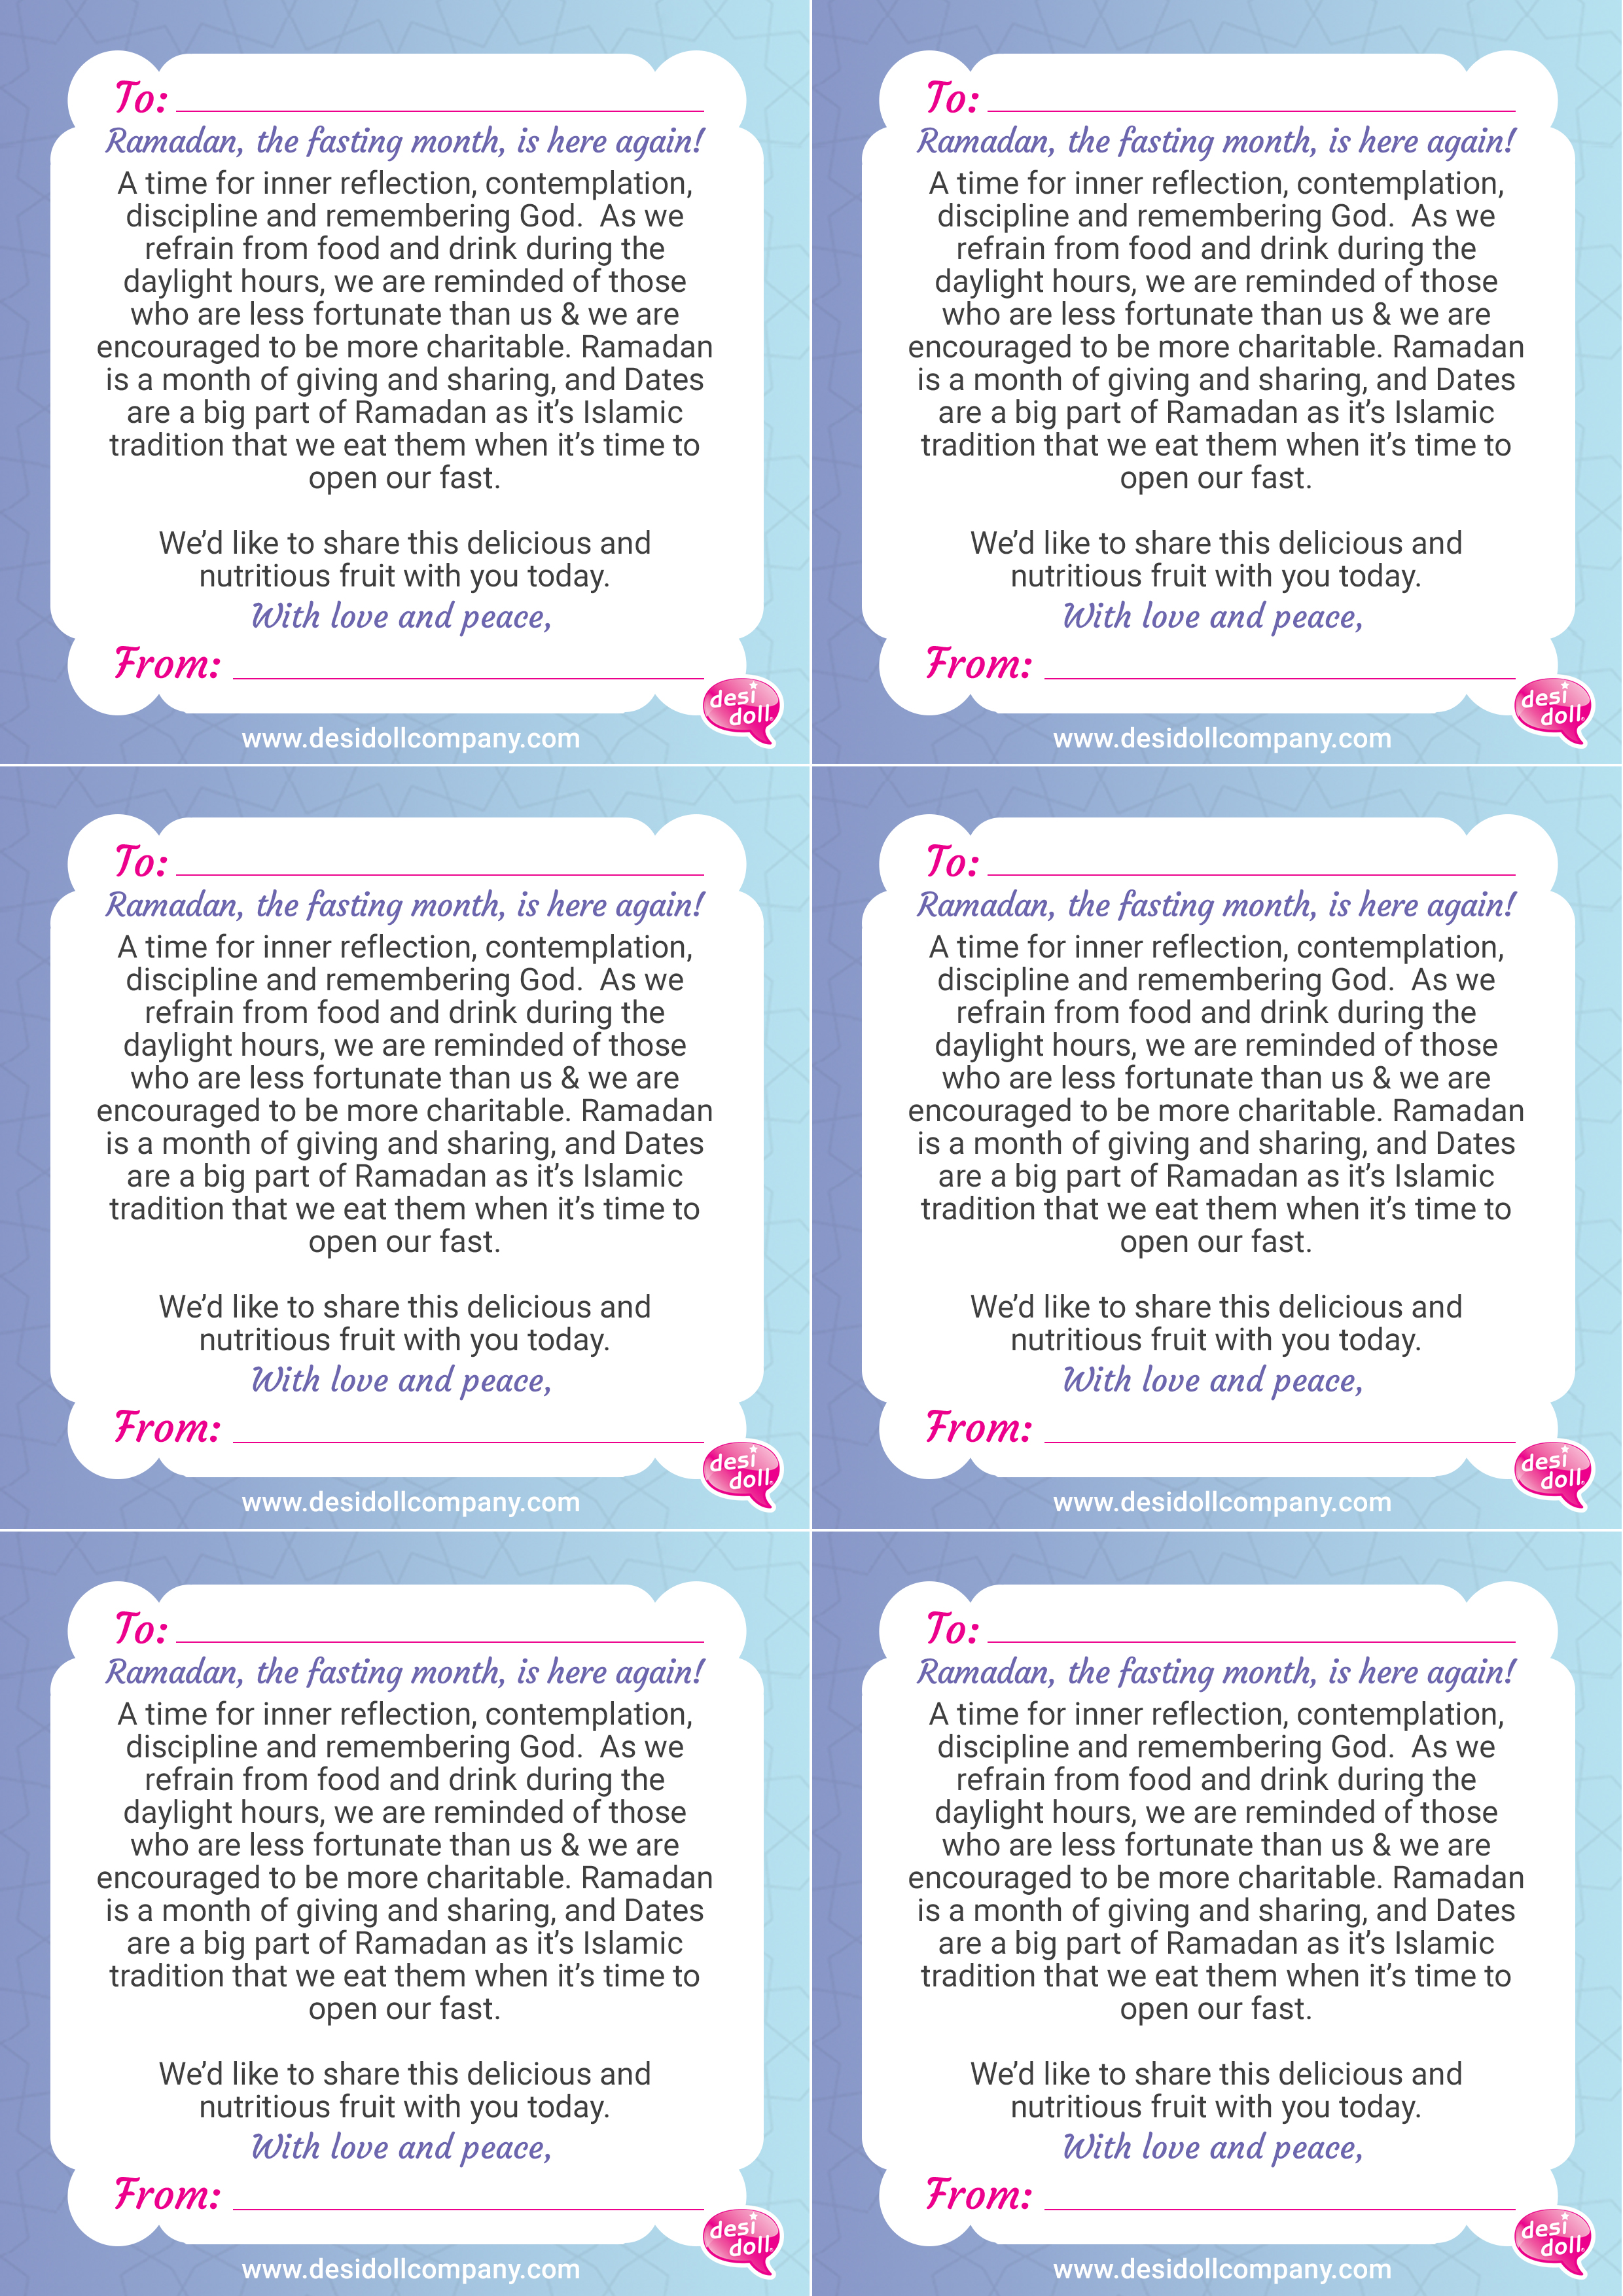 We've created a fun template for your friendly gift notes! Share ...